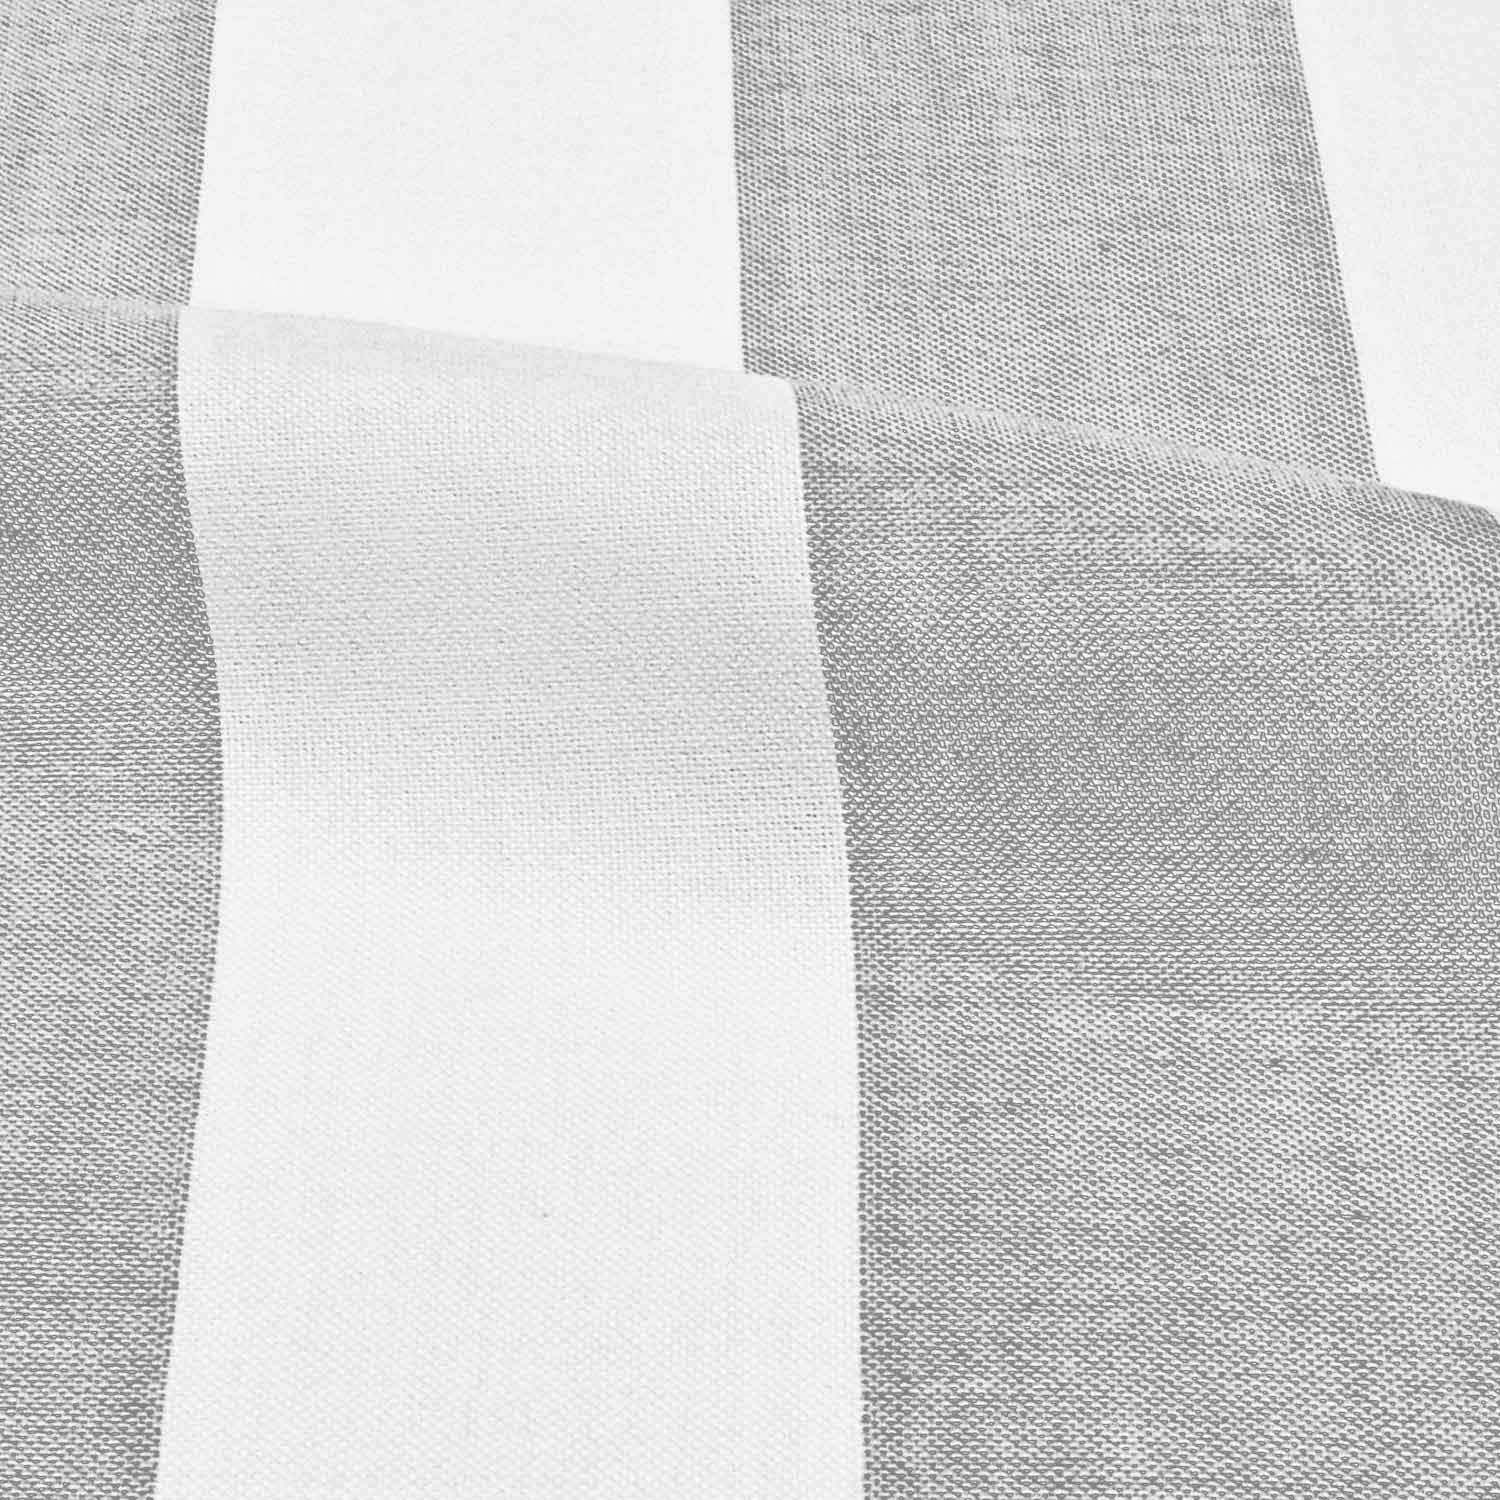 *Image from PKcontract.com (fabric name 'Terrazzo STR Sheer')